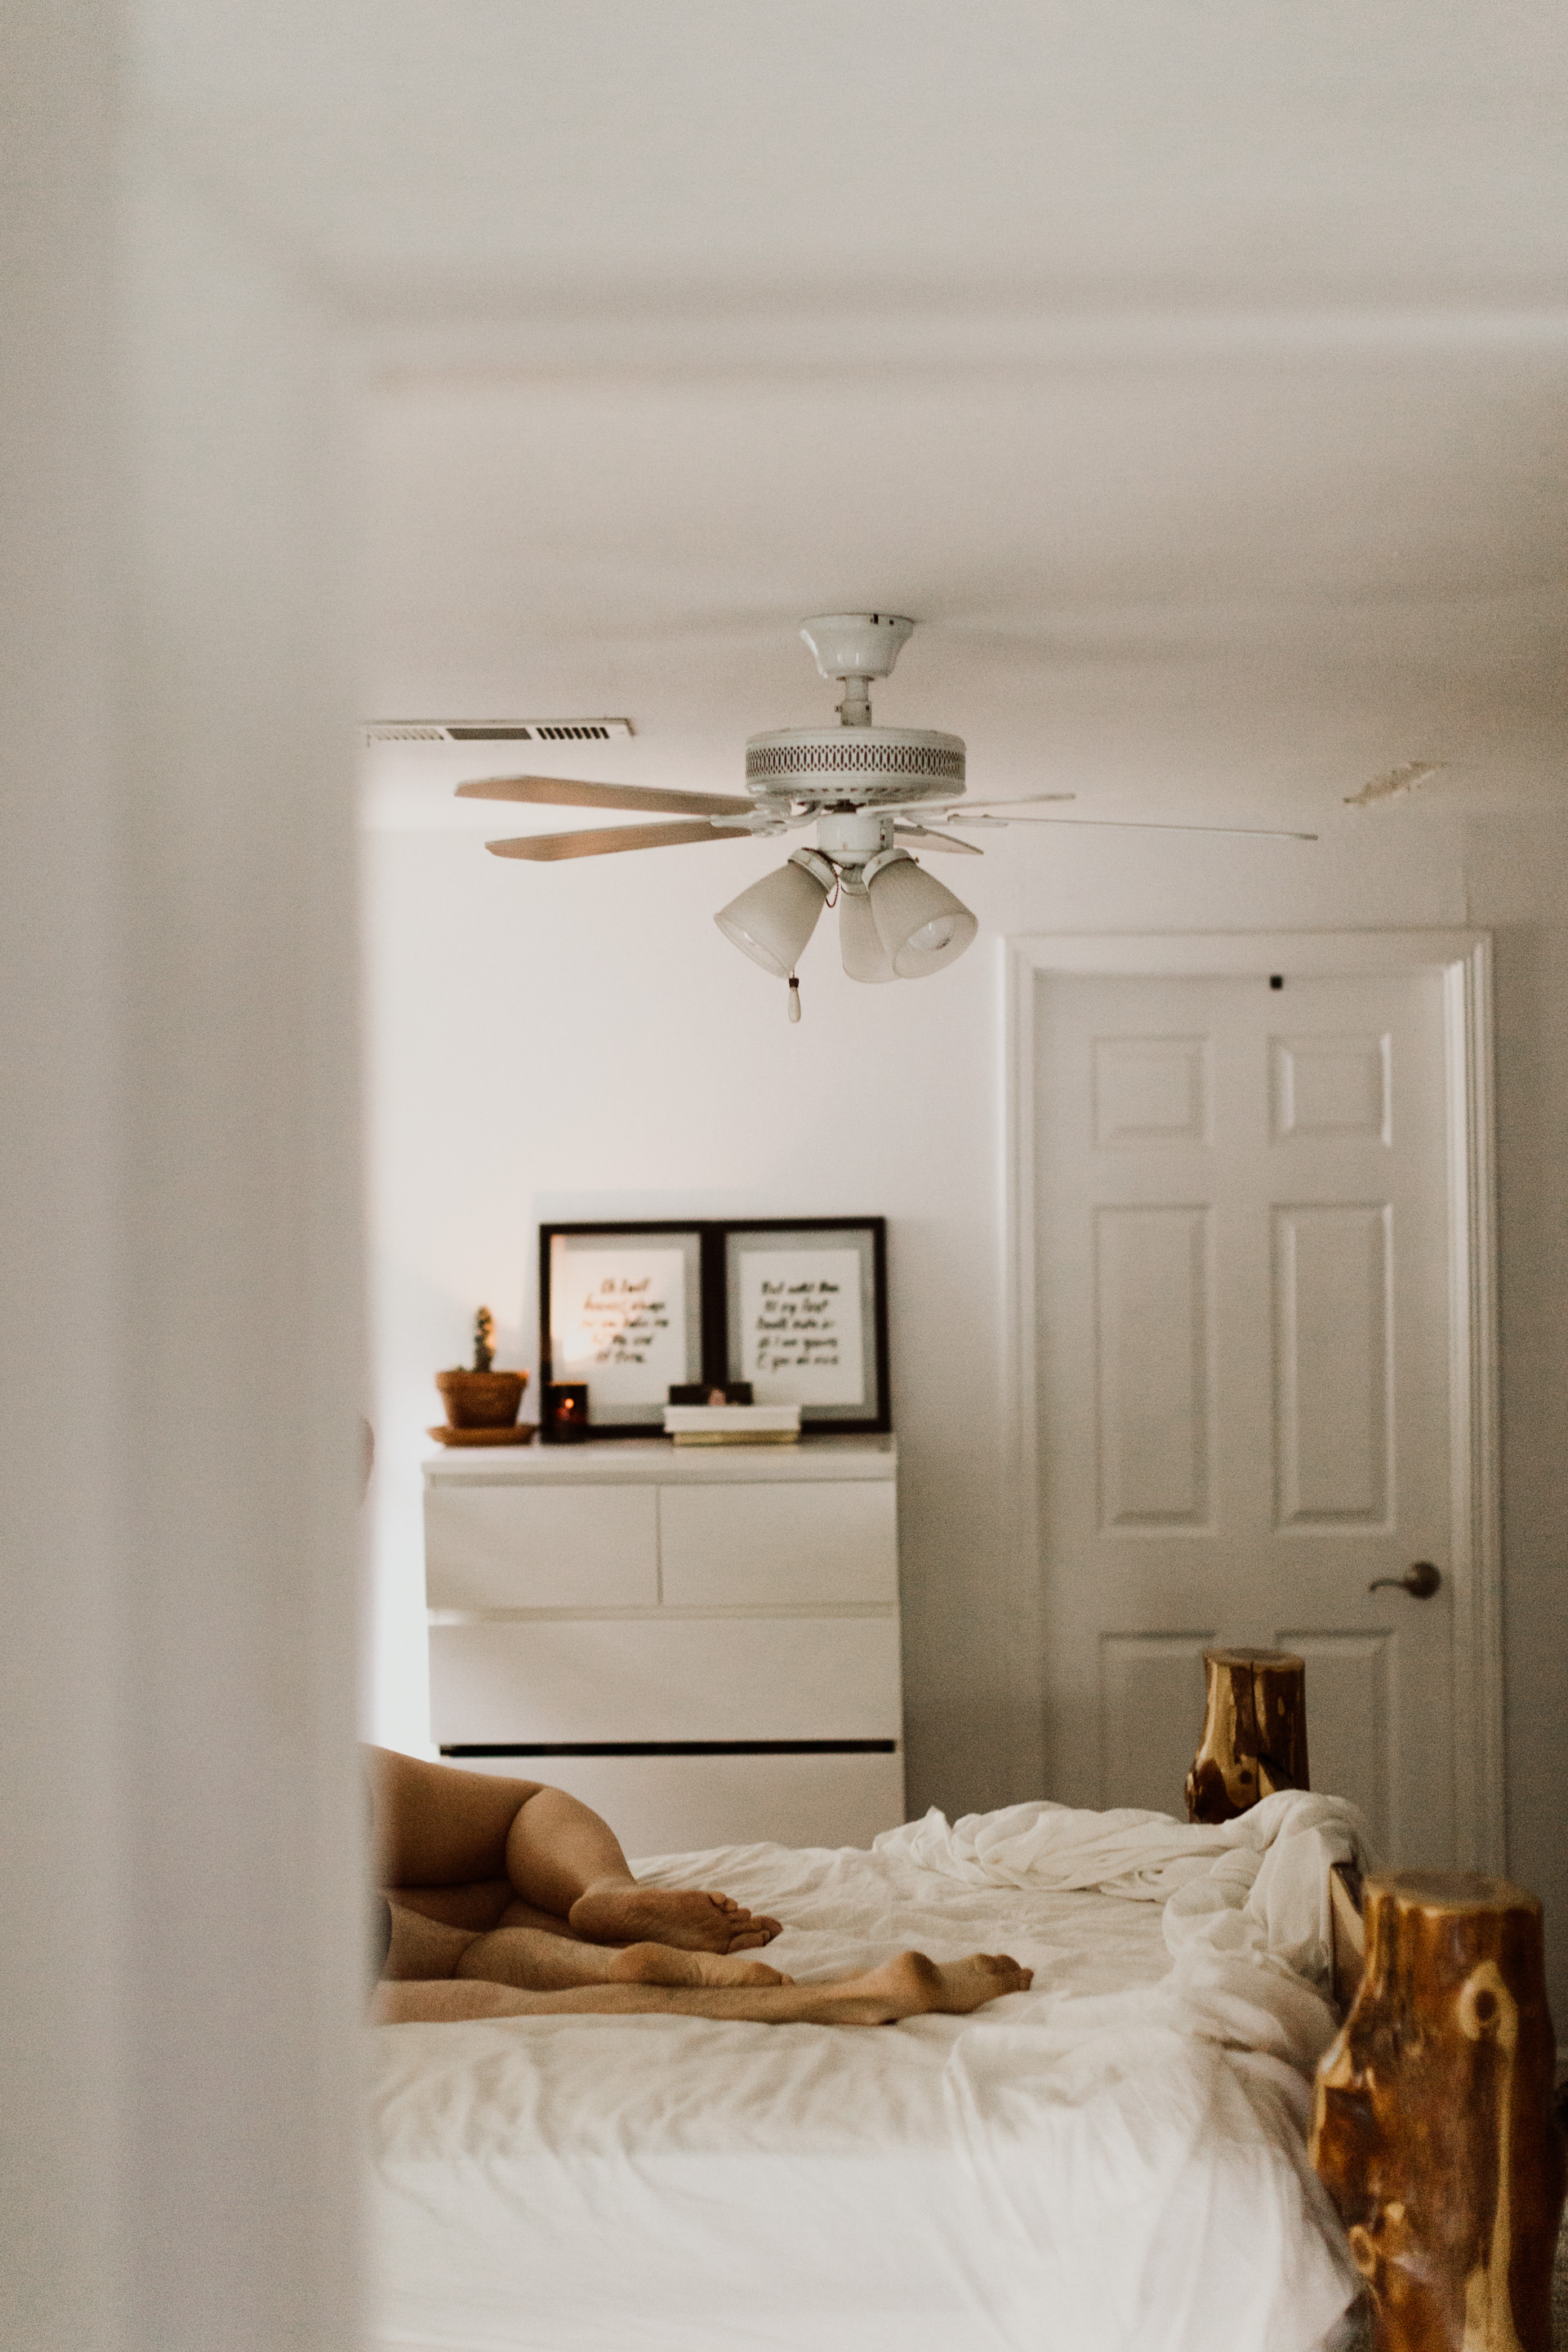 cedarandpines-intimate-in-home-session-45.jpg